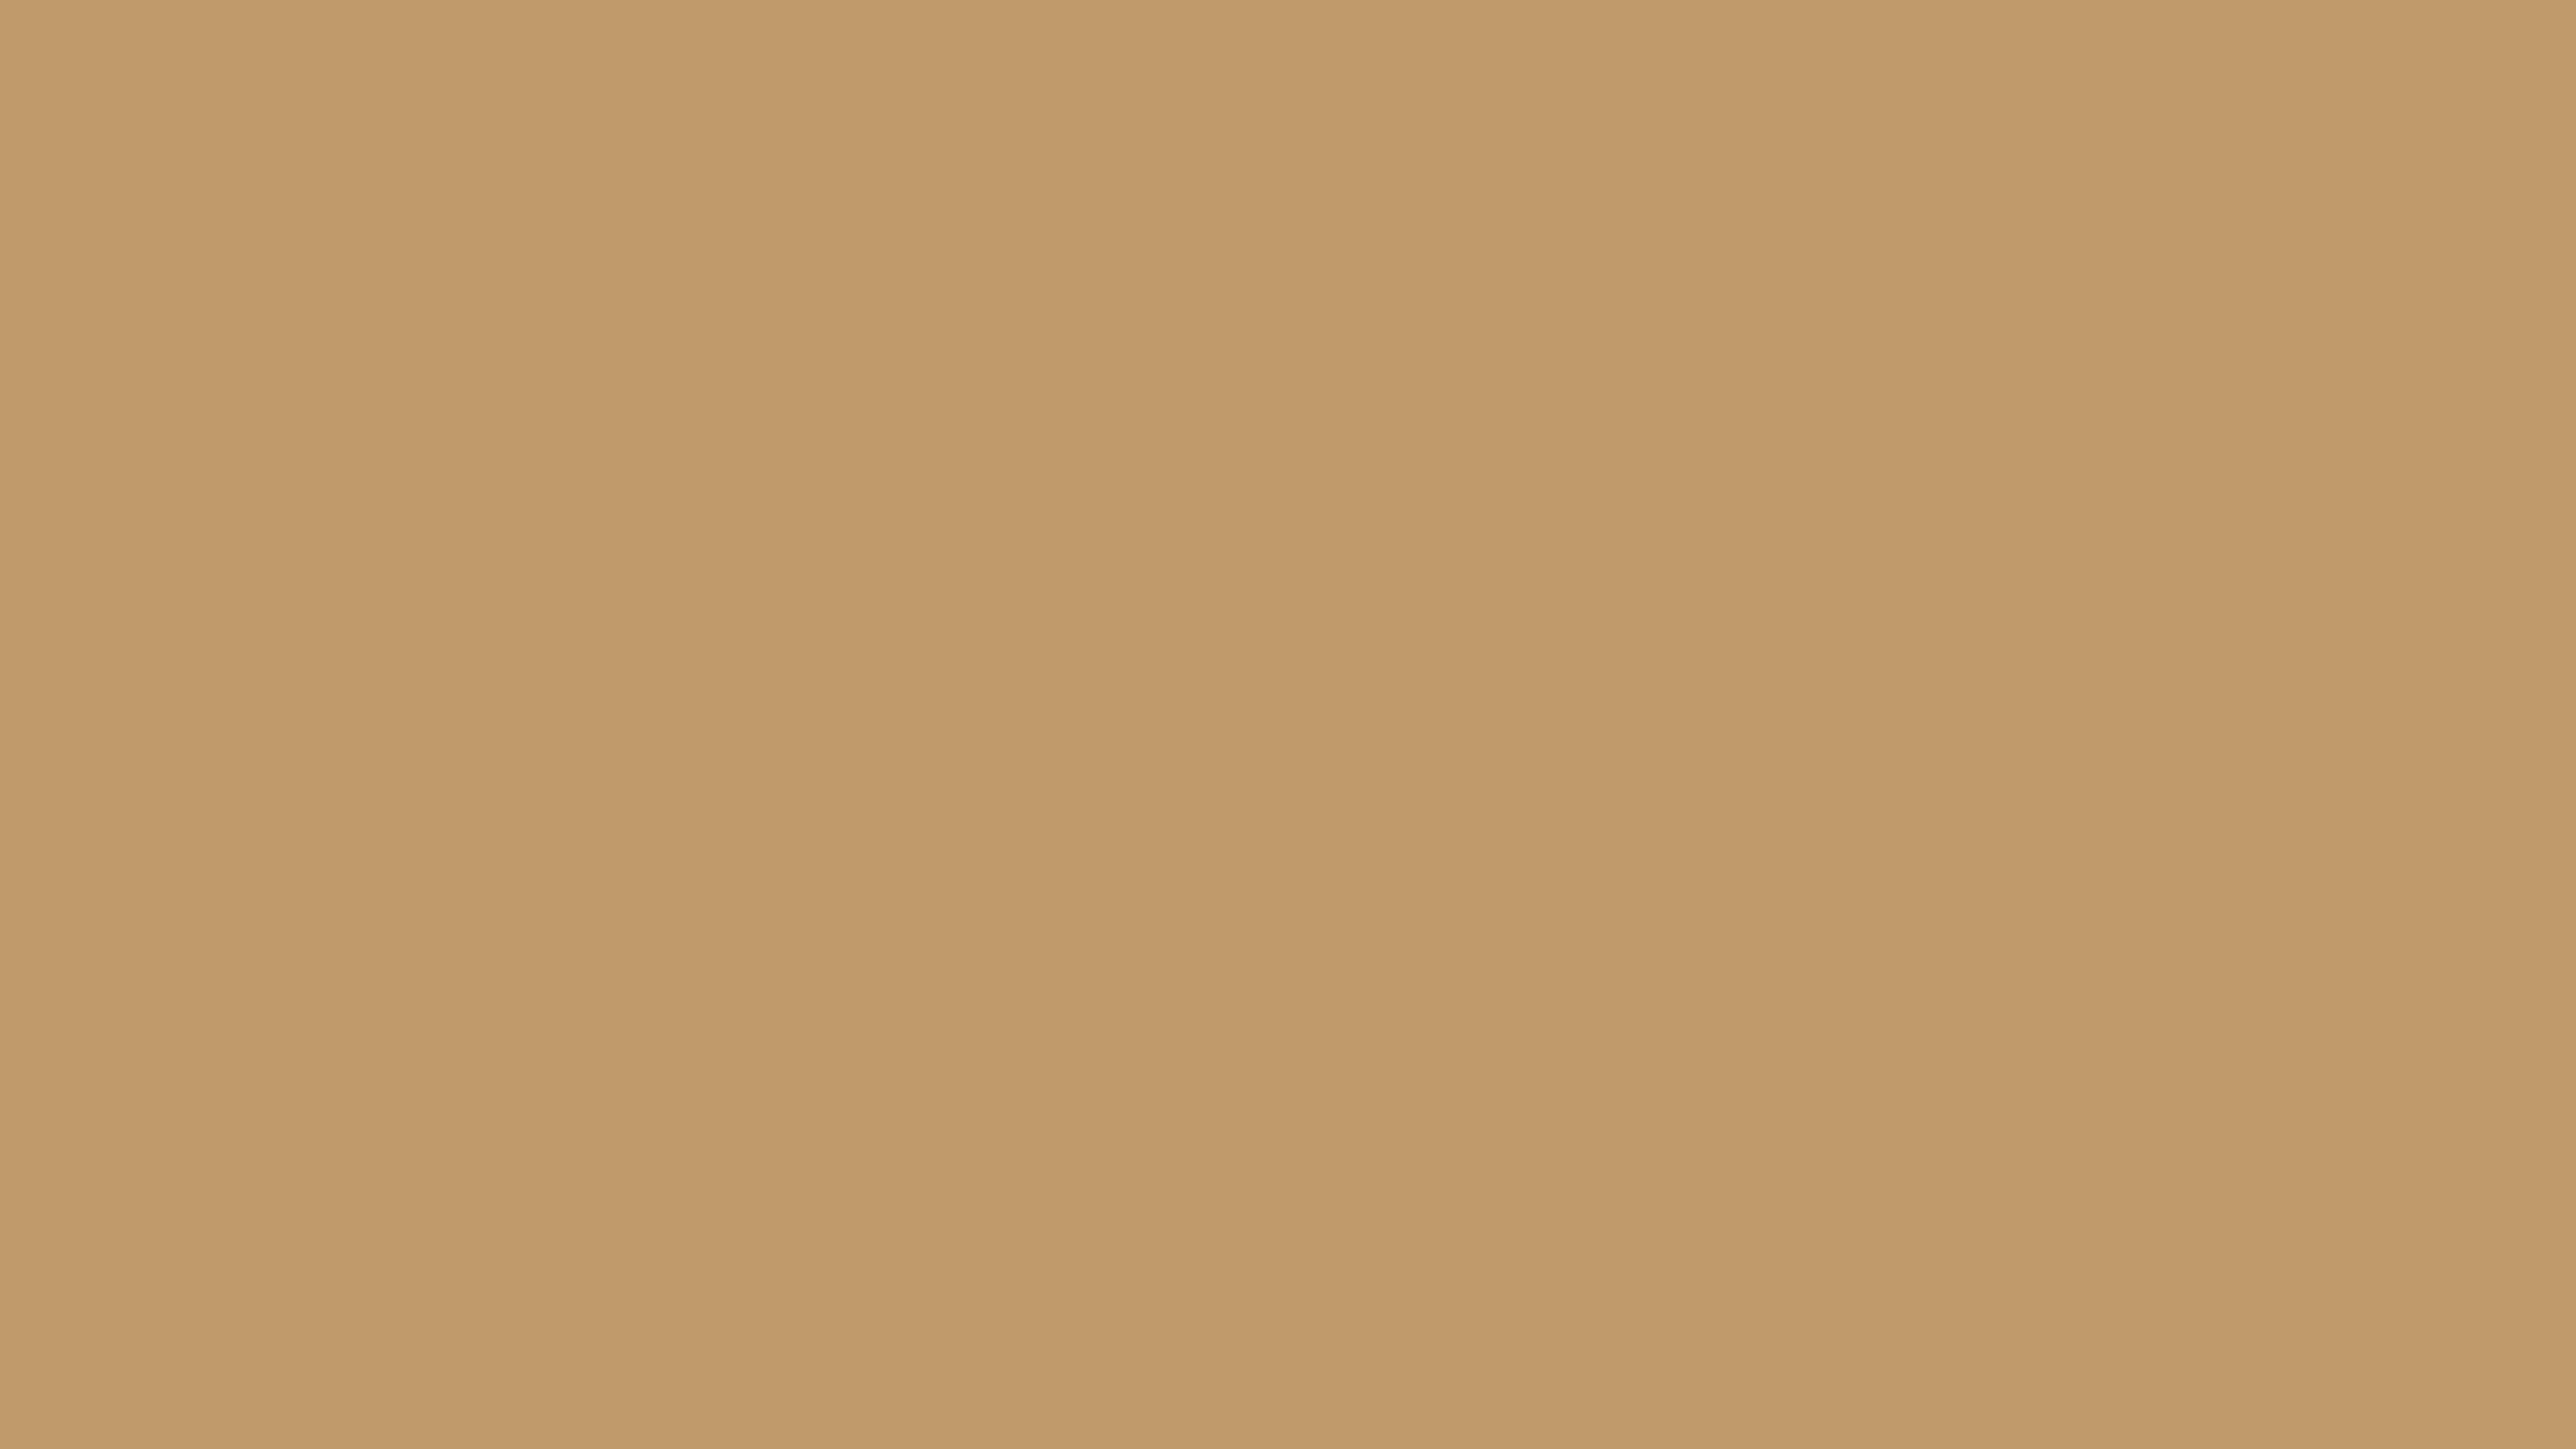 5120x2880 Wood Brown Solid Color Background